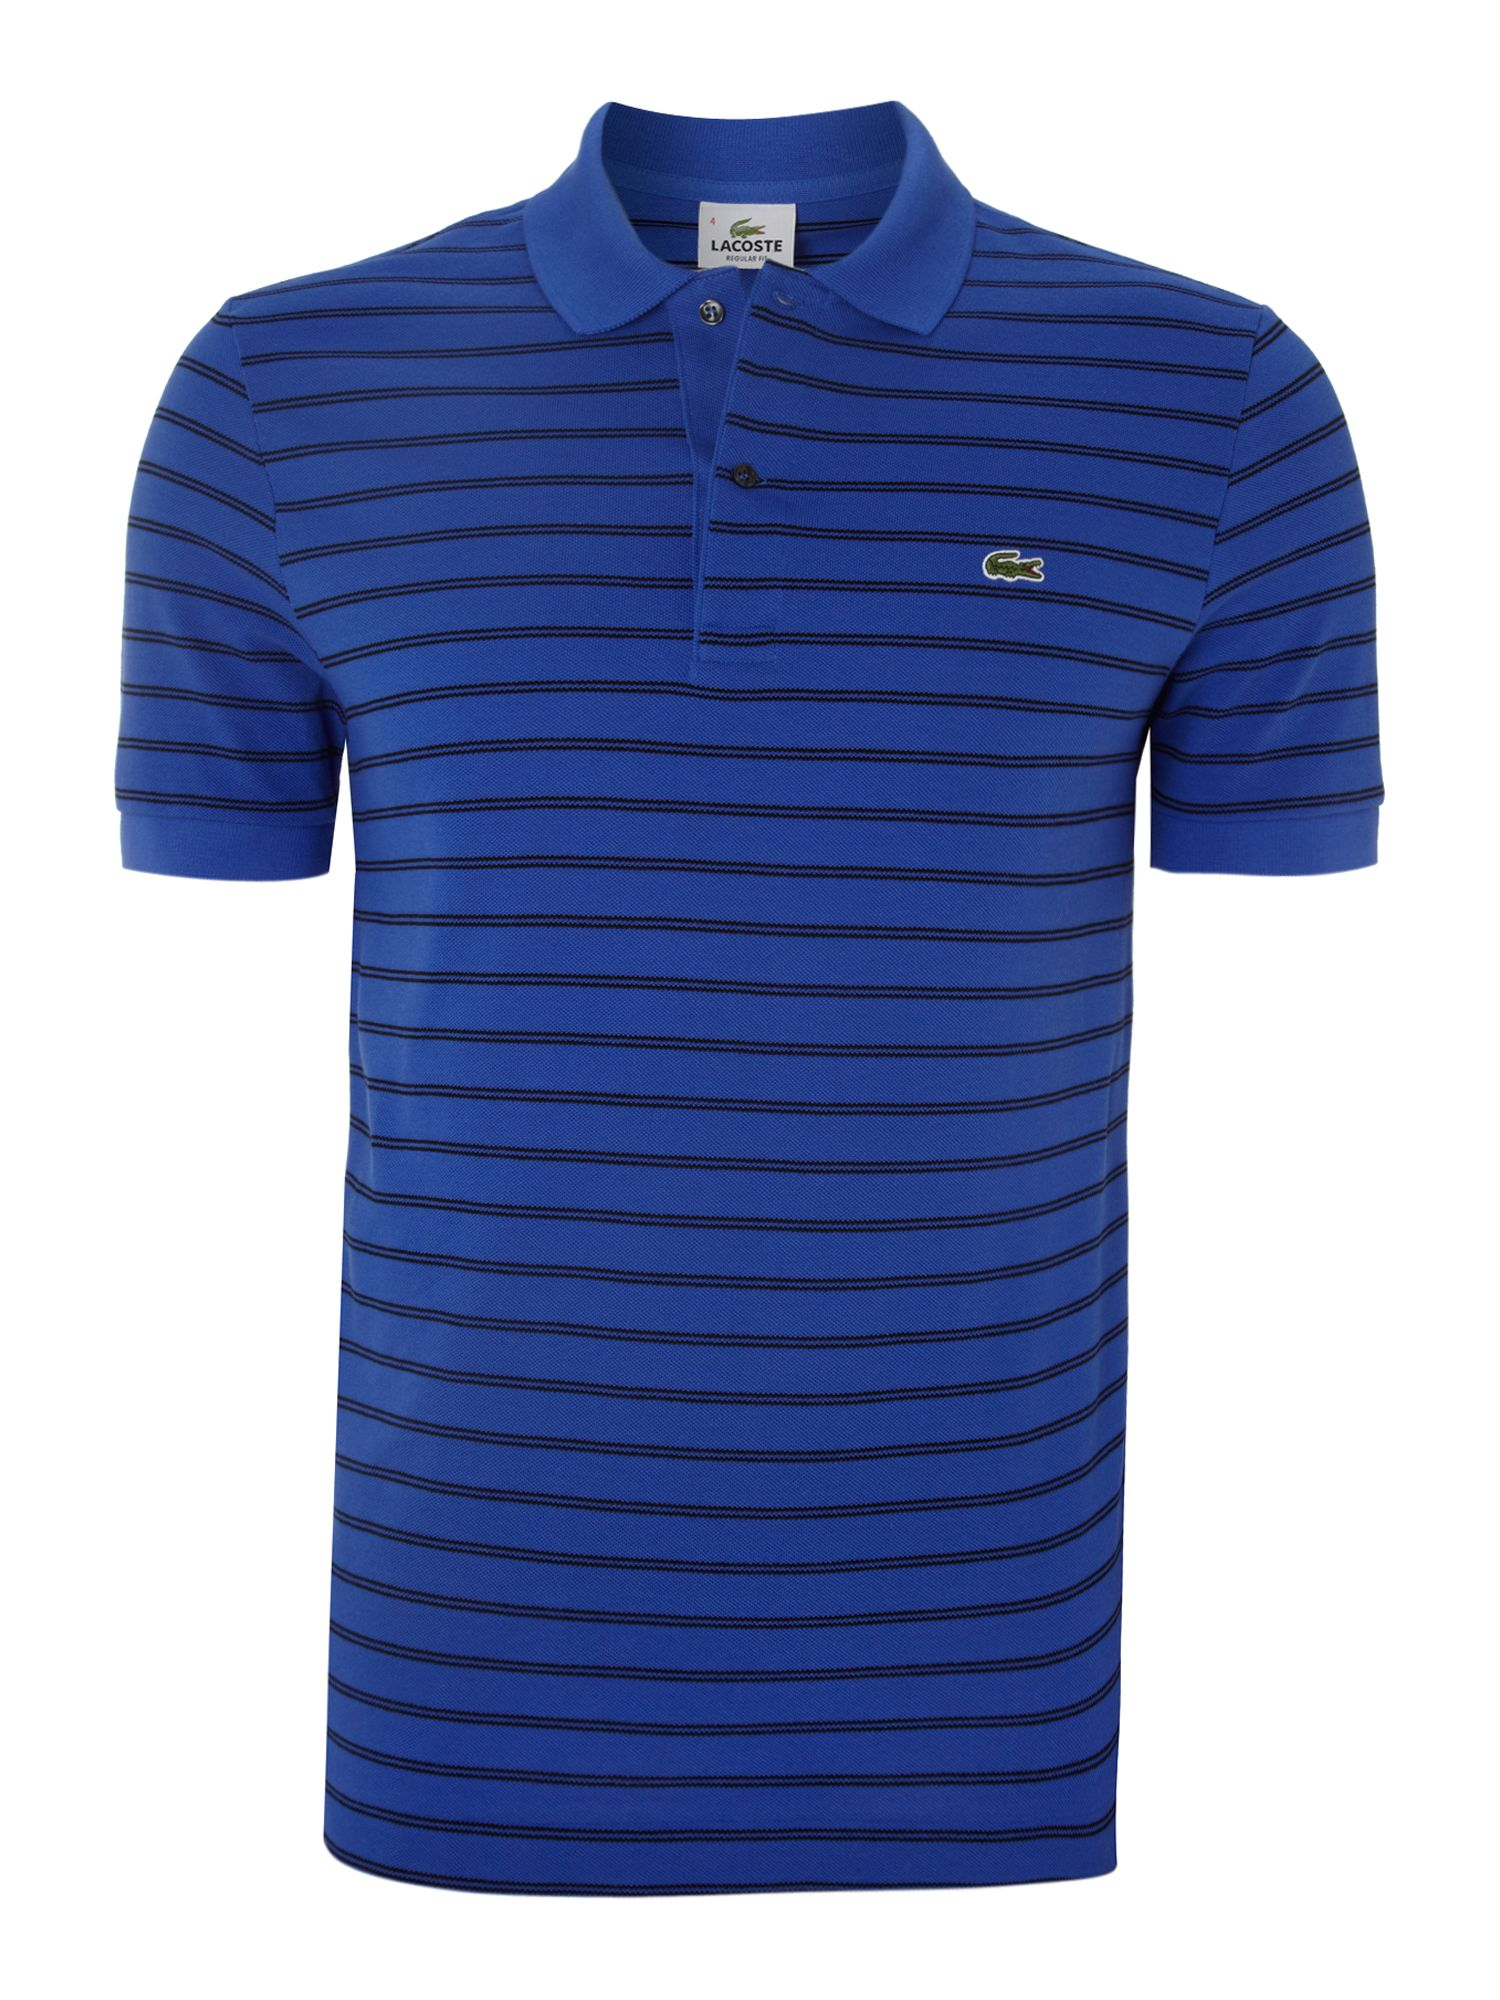 Fine striped polo shirt